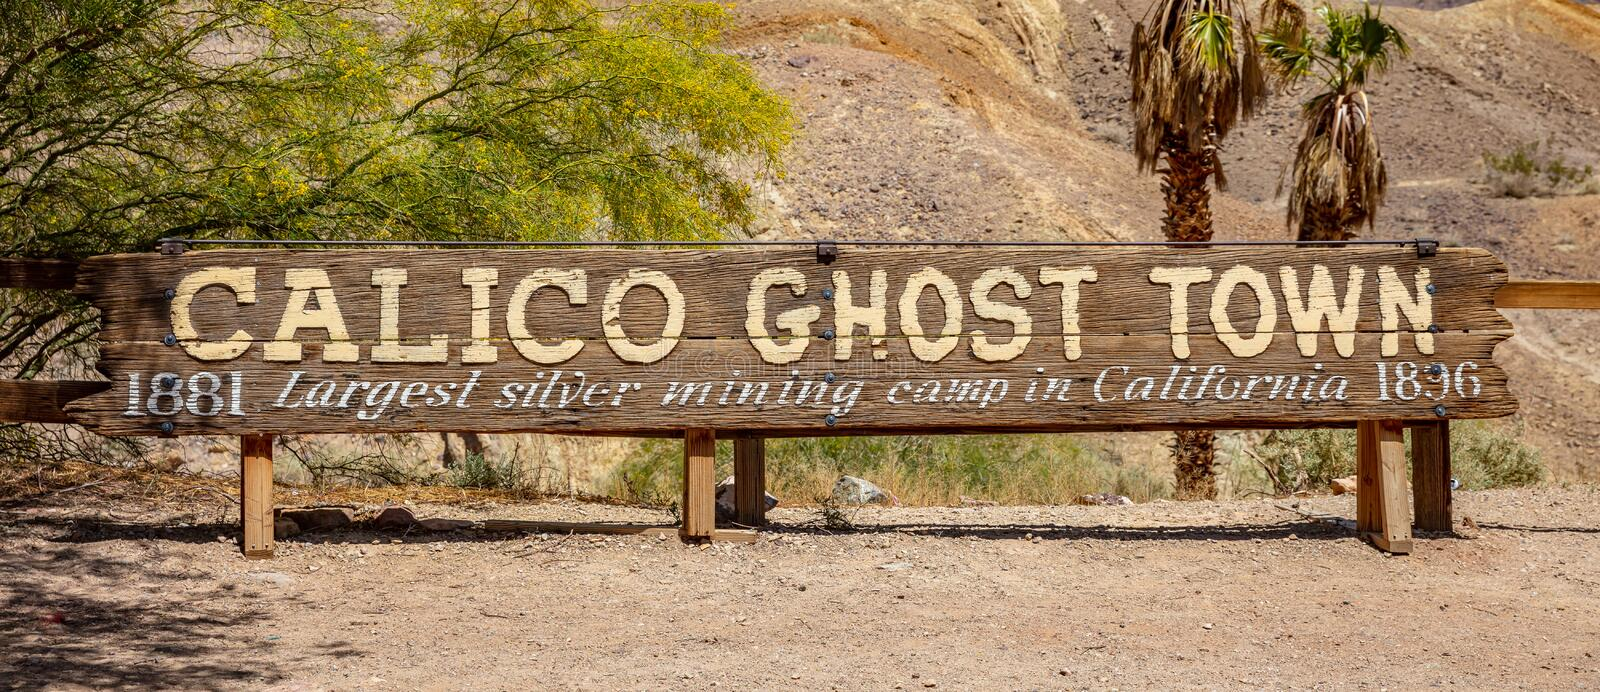 Calico ghost town theme park. Old silver mine vintage town. San Bernardino, Ca, USA. Calico ghost town California, USA. May 29, 2019. Old former silver mining stock photography